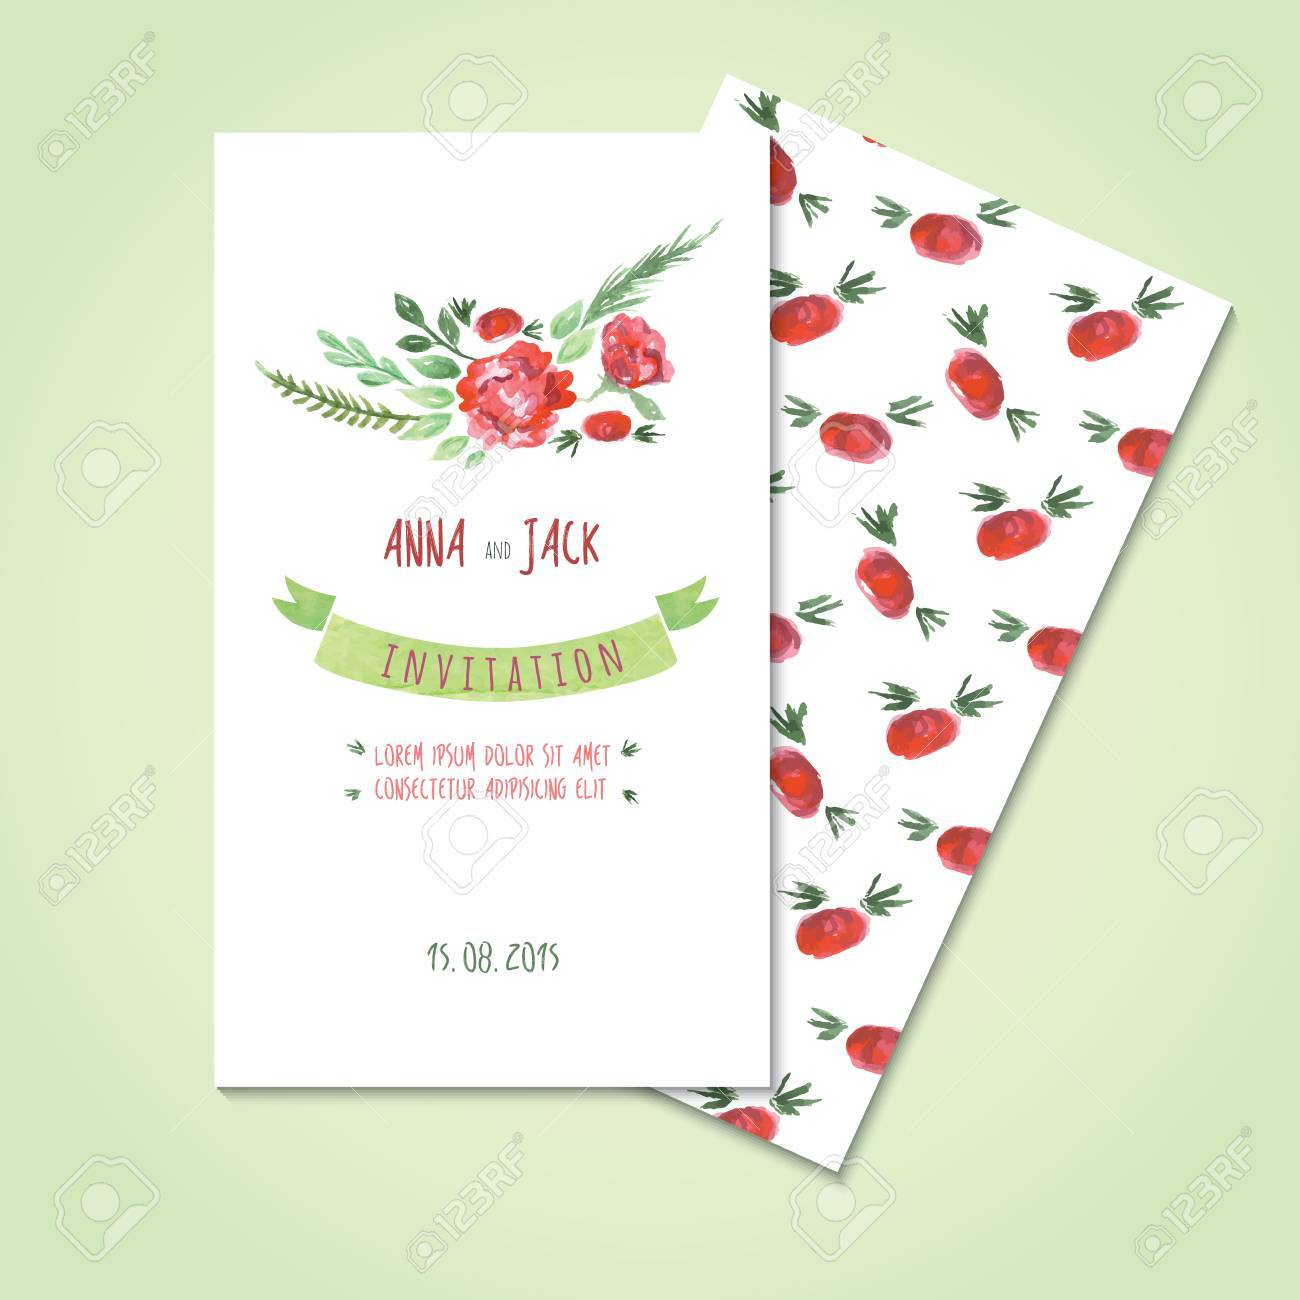 Watercolor Card Templates For Wedding Invitation Save The Date